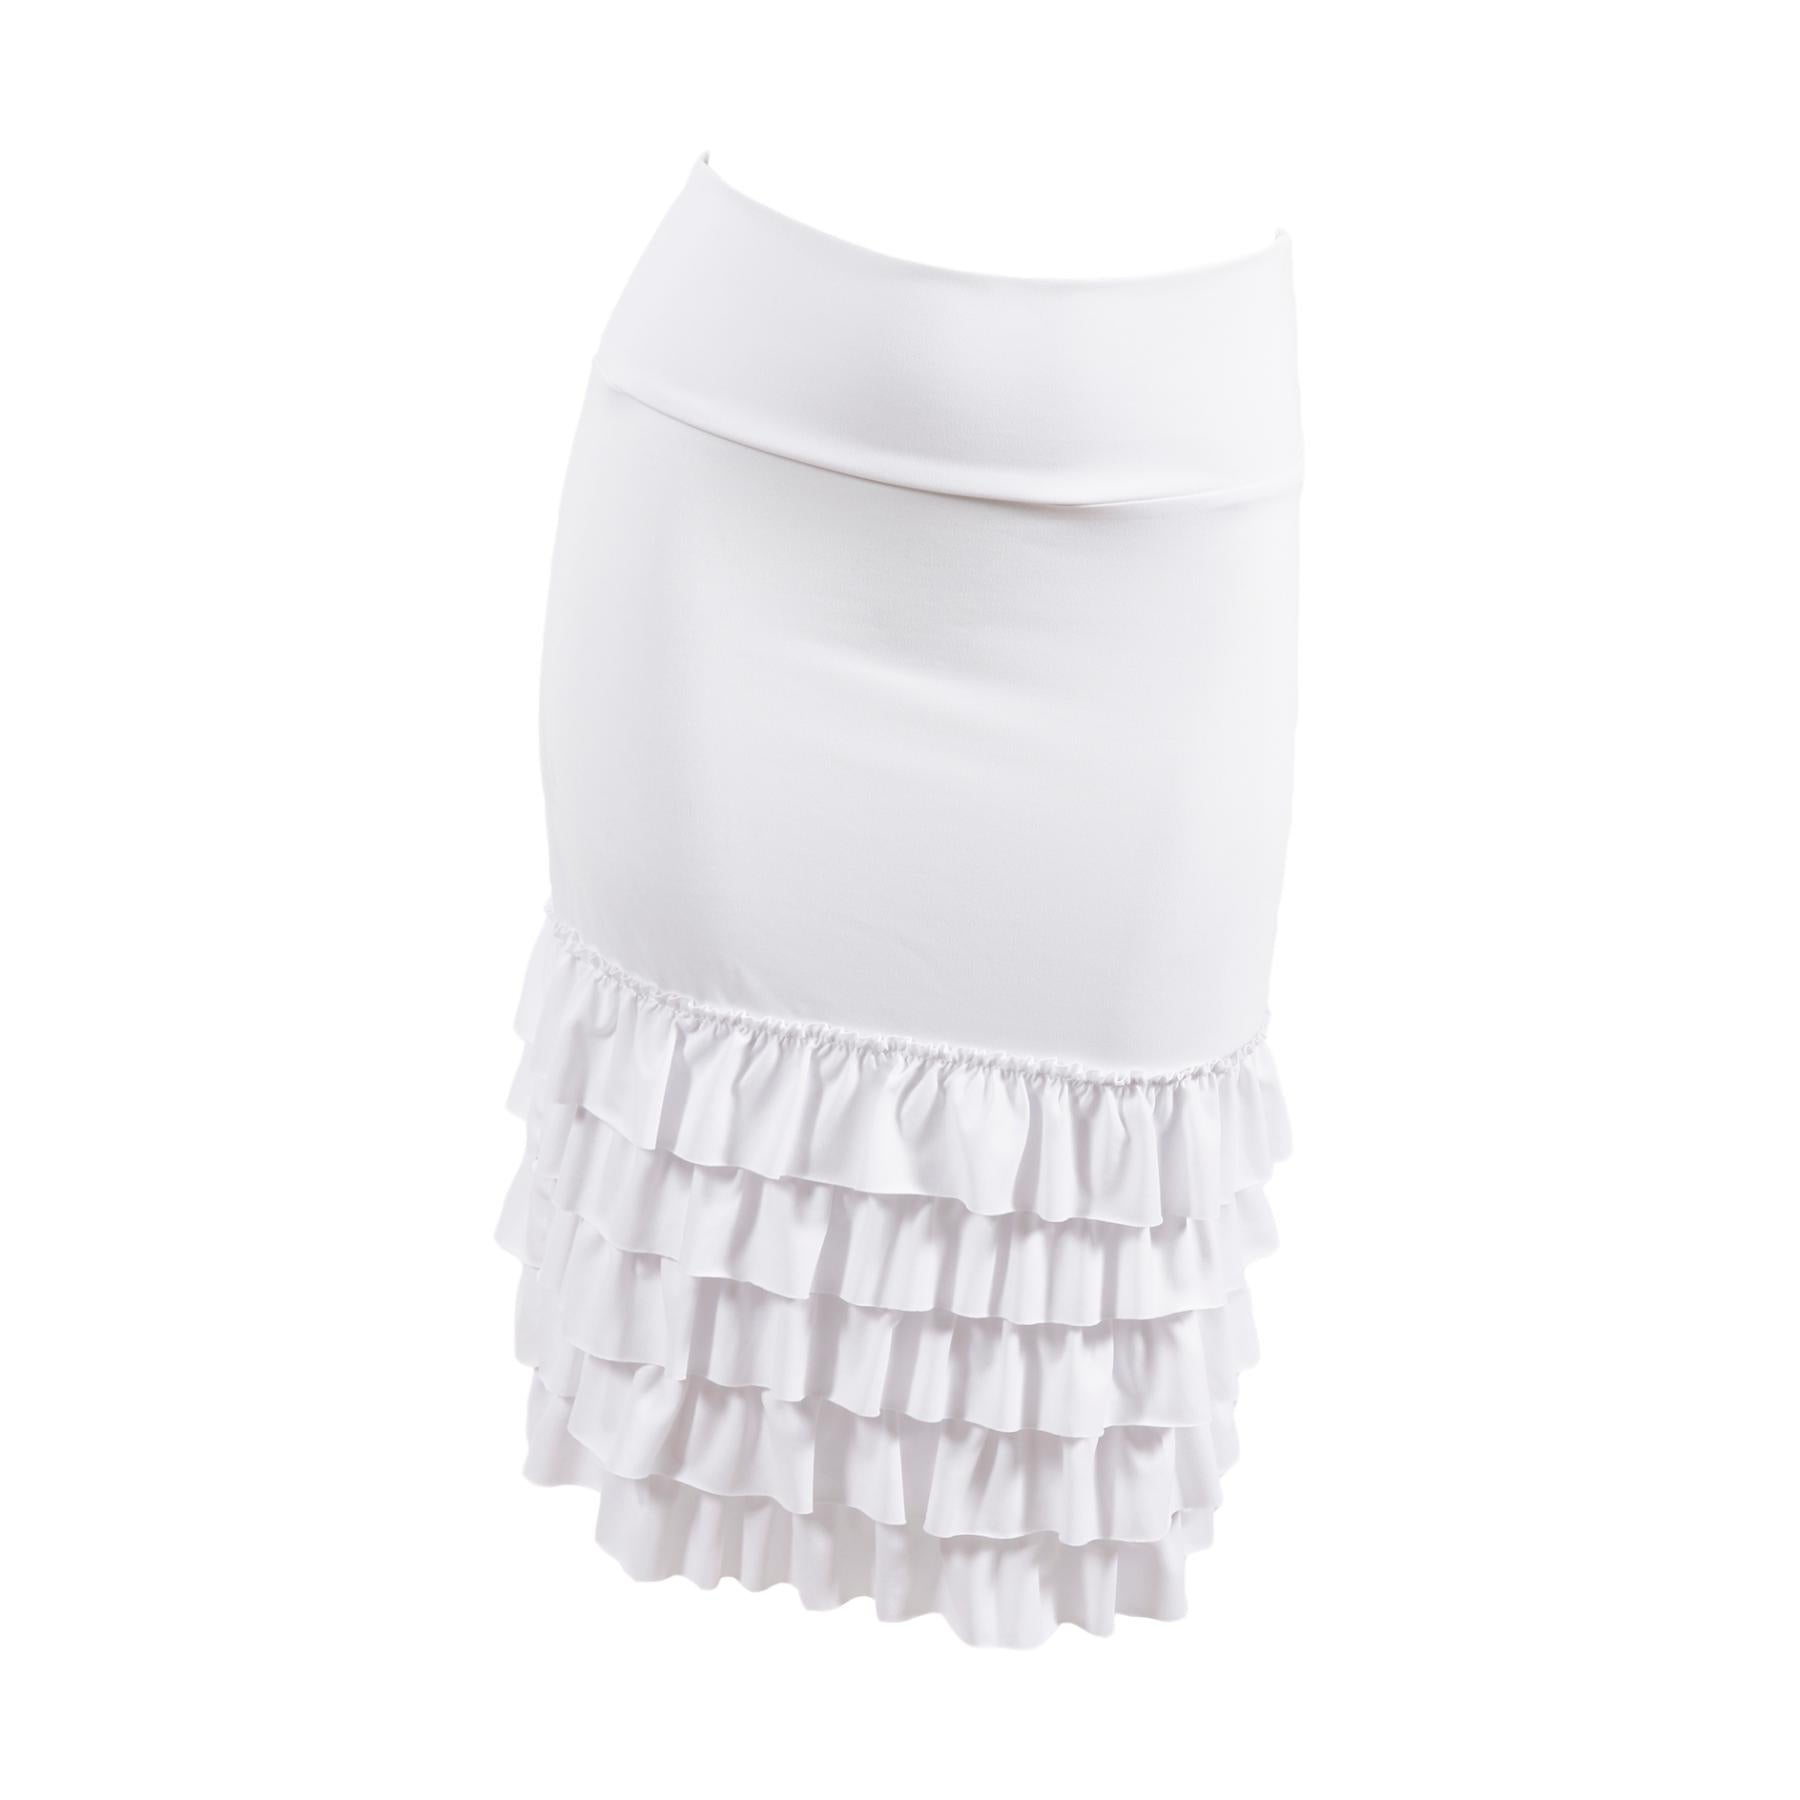 Bring on the Frill Layering Skirt | bleach white, skirt extenders, Peekaboo Chic | Modest Layering Apparel for women